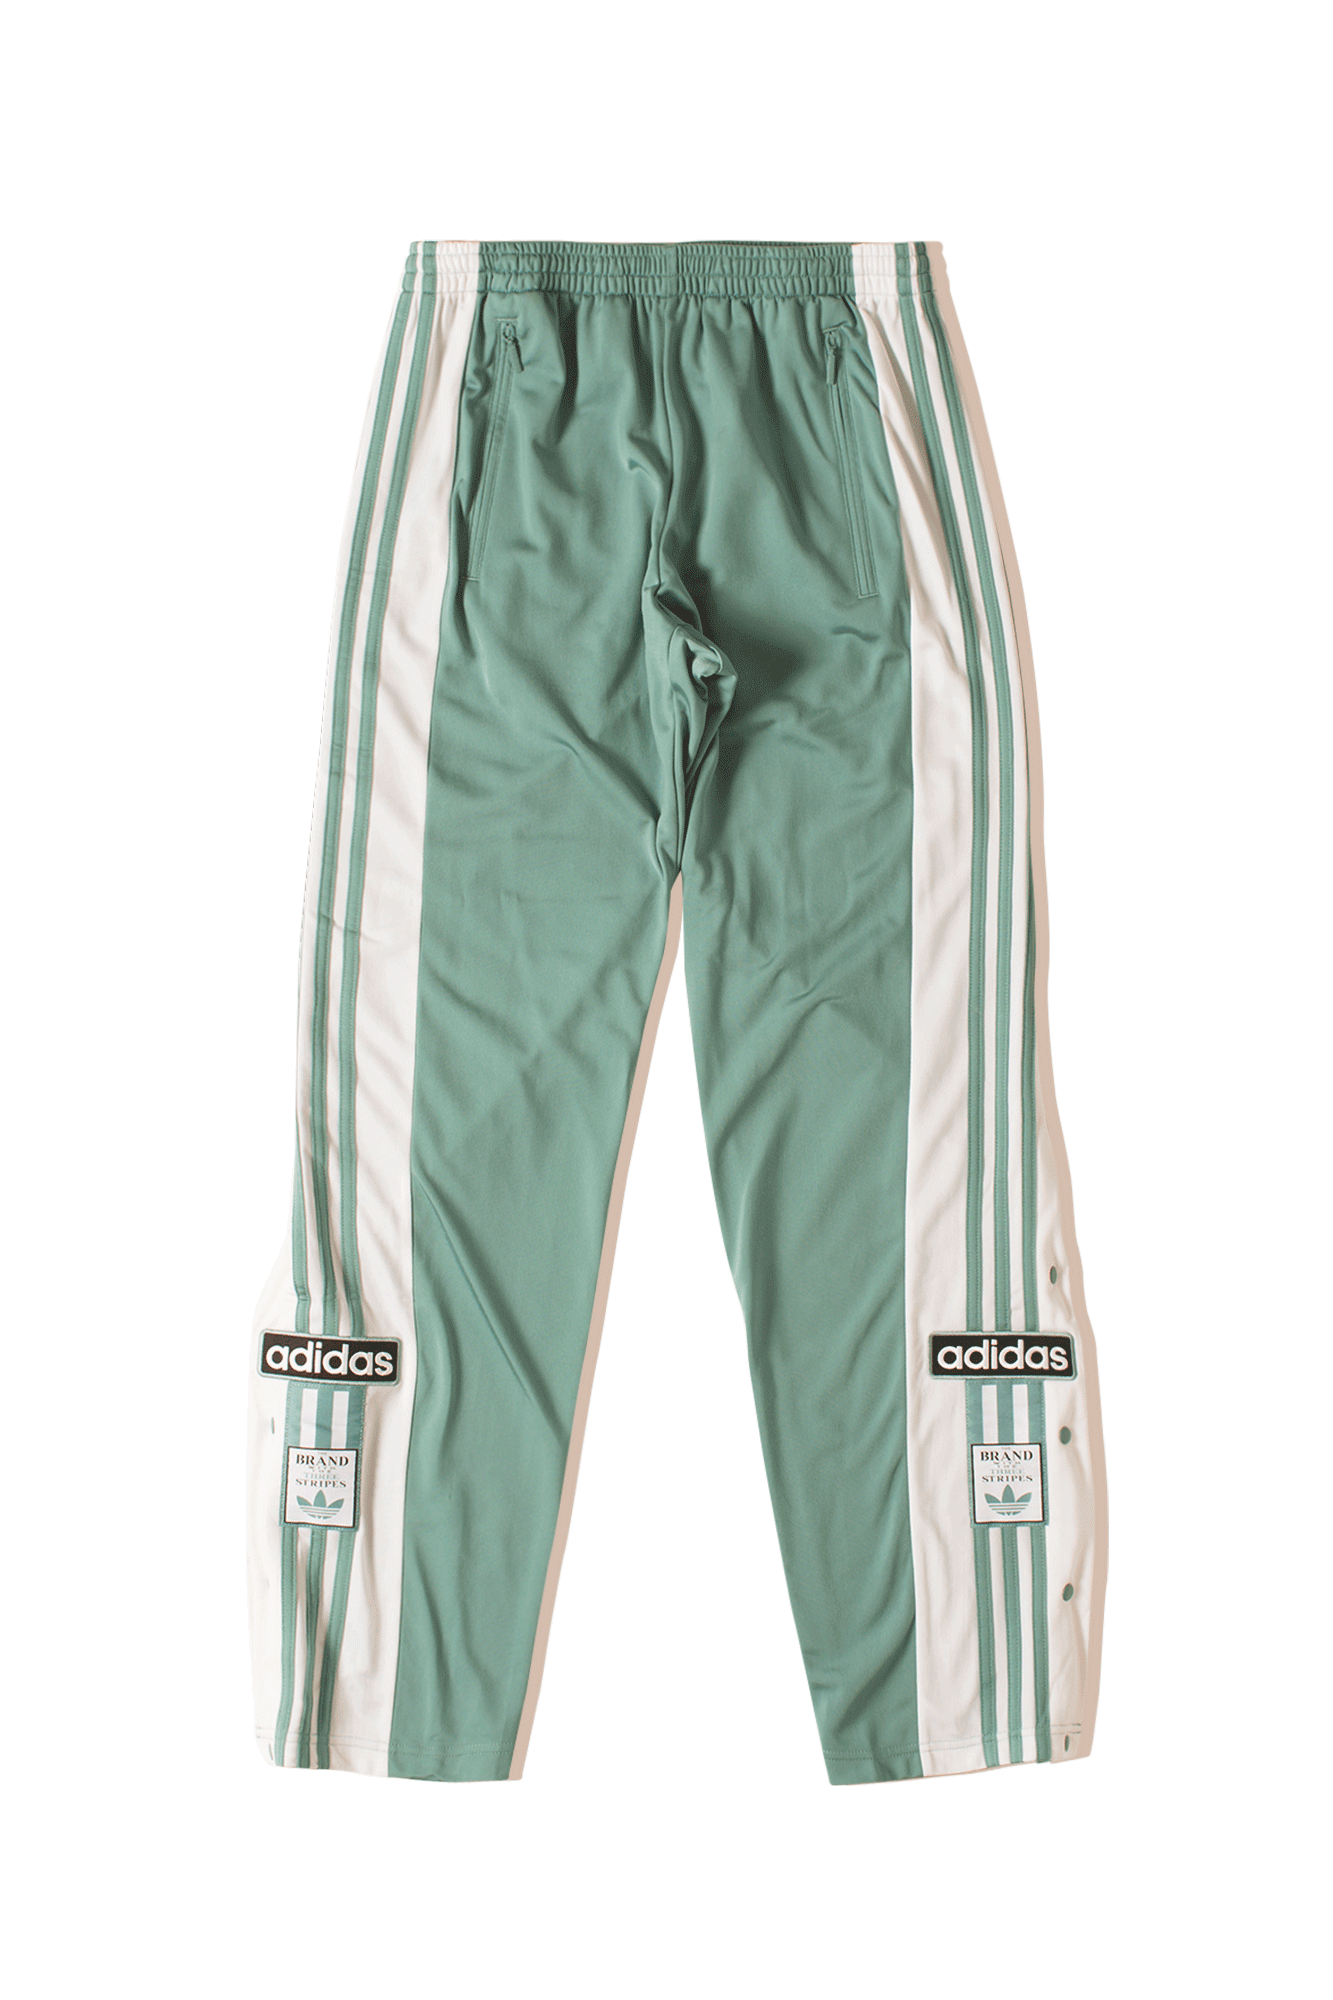 Adidas Originals Sweatpants Snap Pants Green DV1622#000#C0013#XS - One Block Down